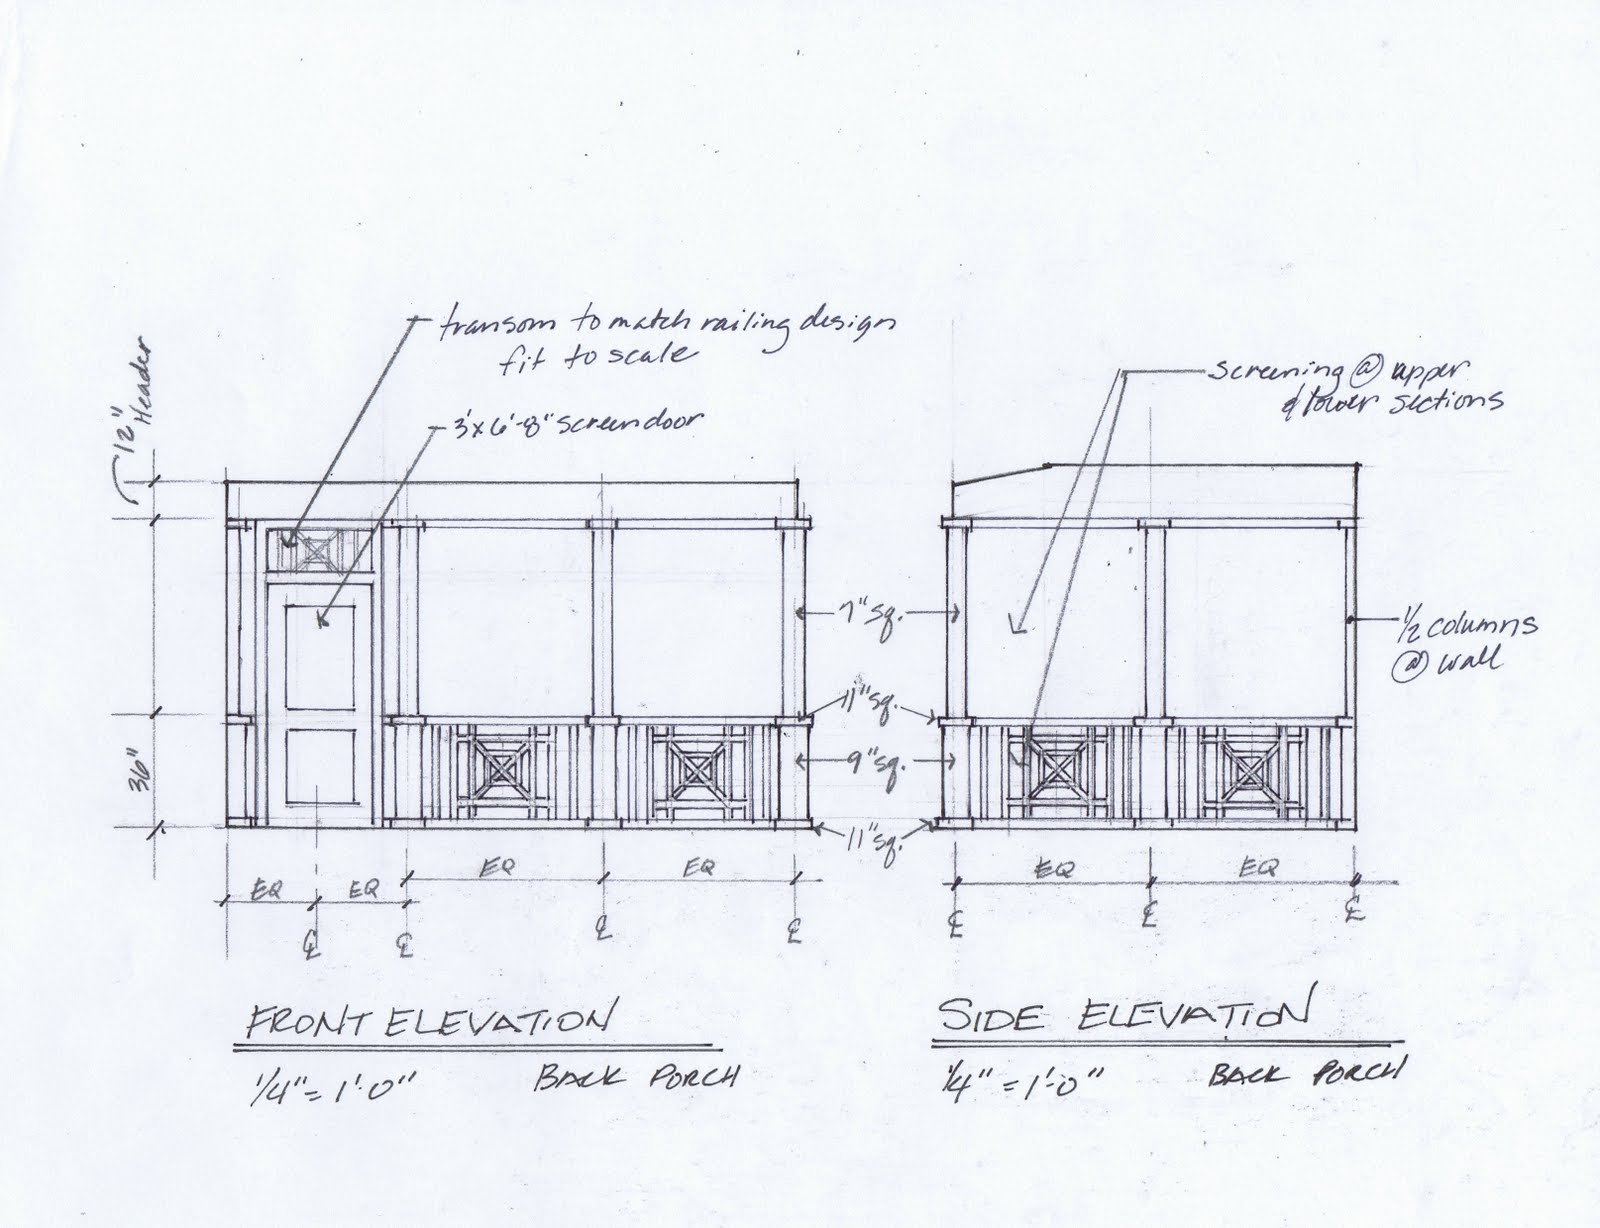 Printable Porch Swing Plans Plans Randkey furthermore How Install Foundation Drain also Bloxburg homes 3F furthermore Porch Construction Diagram as well Residential Wood Framing Details. on screen porch construction plans